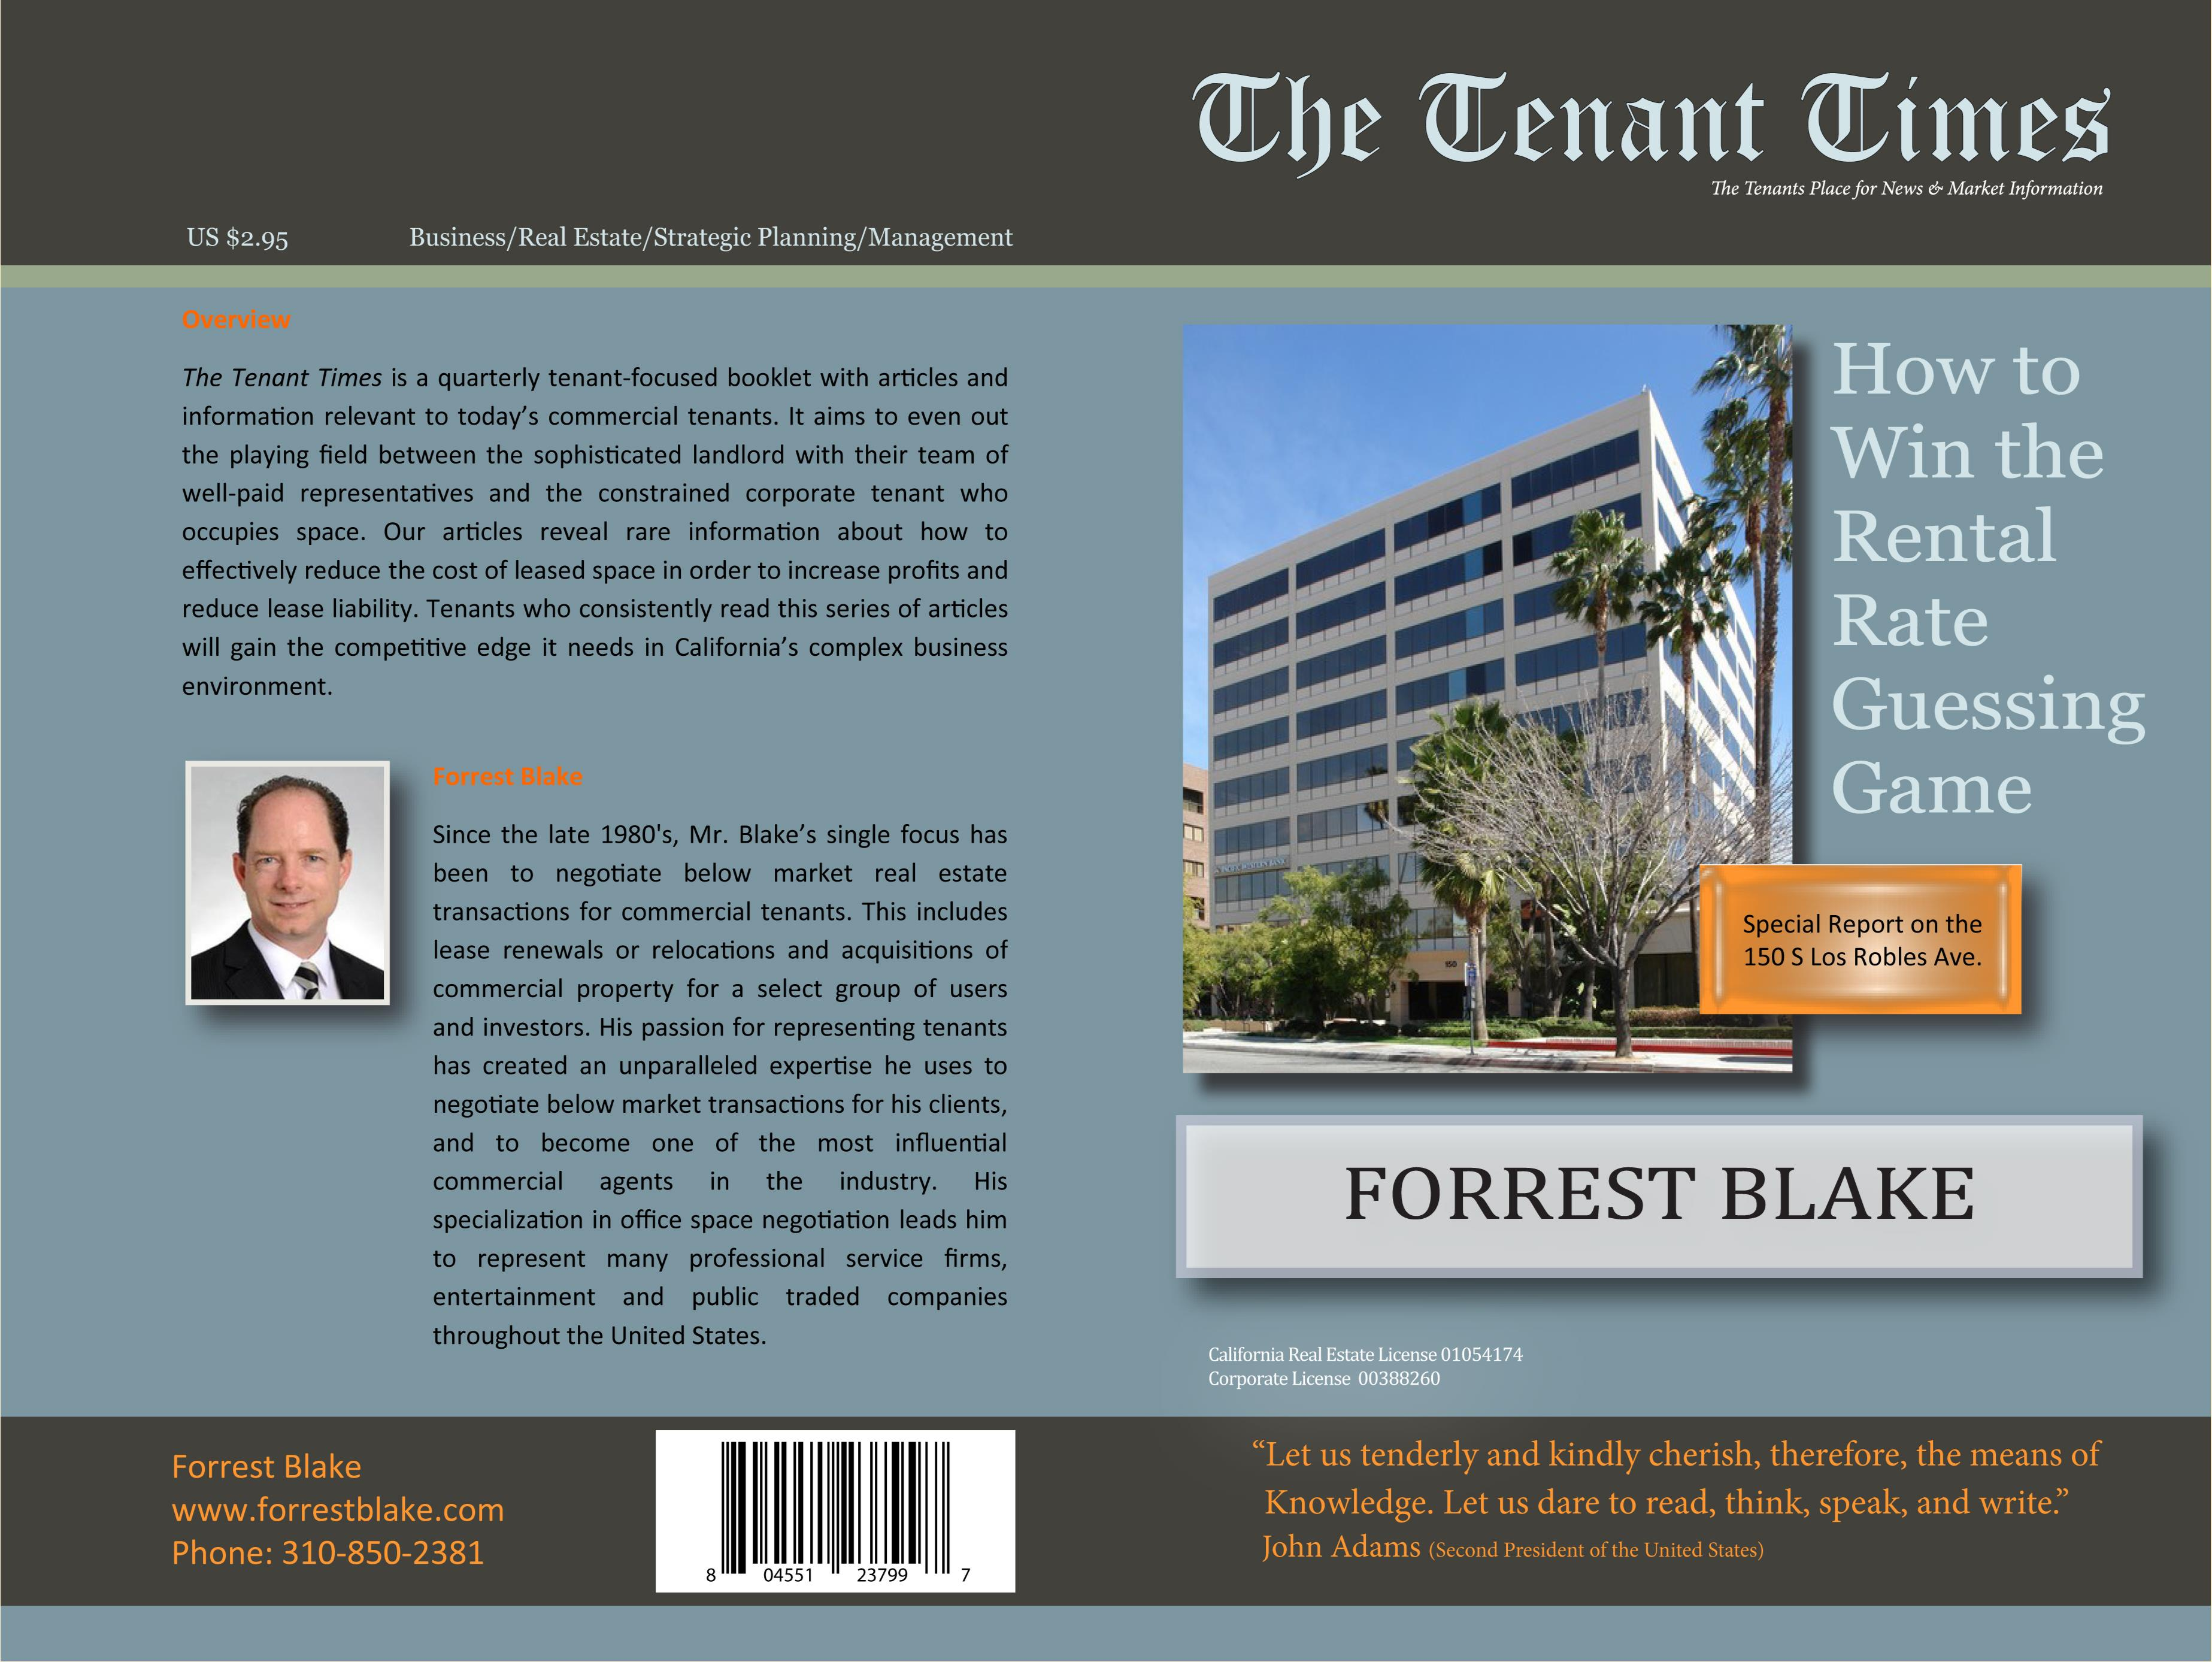 2Q Tenant Times 150 S Los Robles cover image